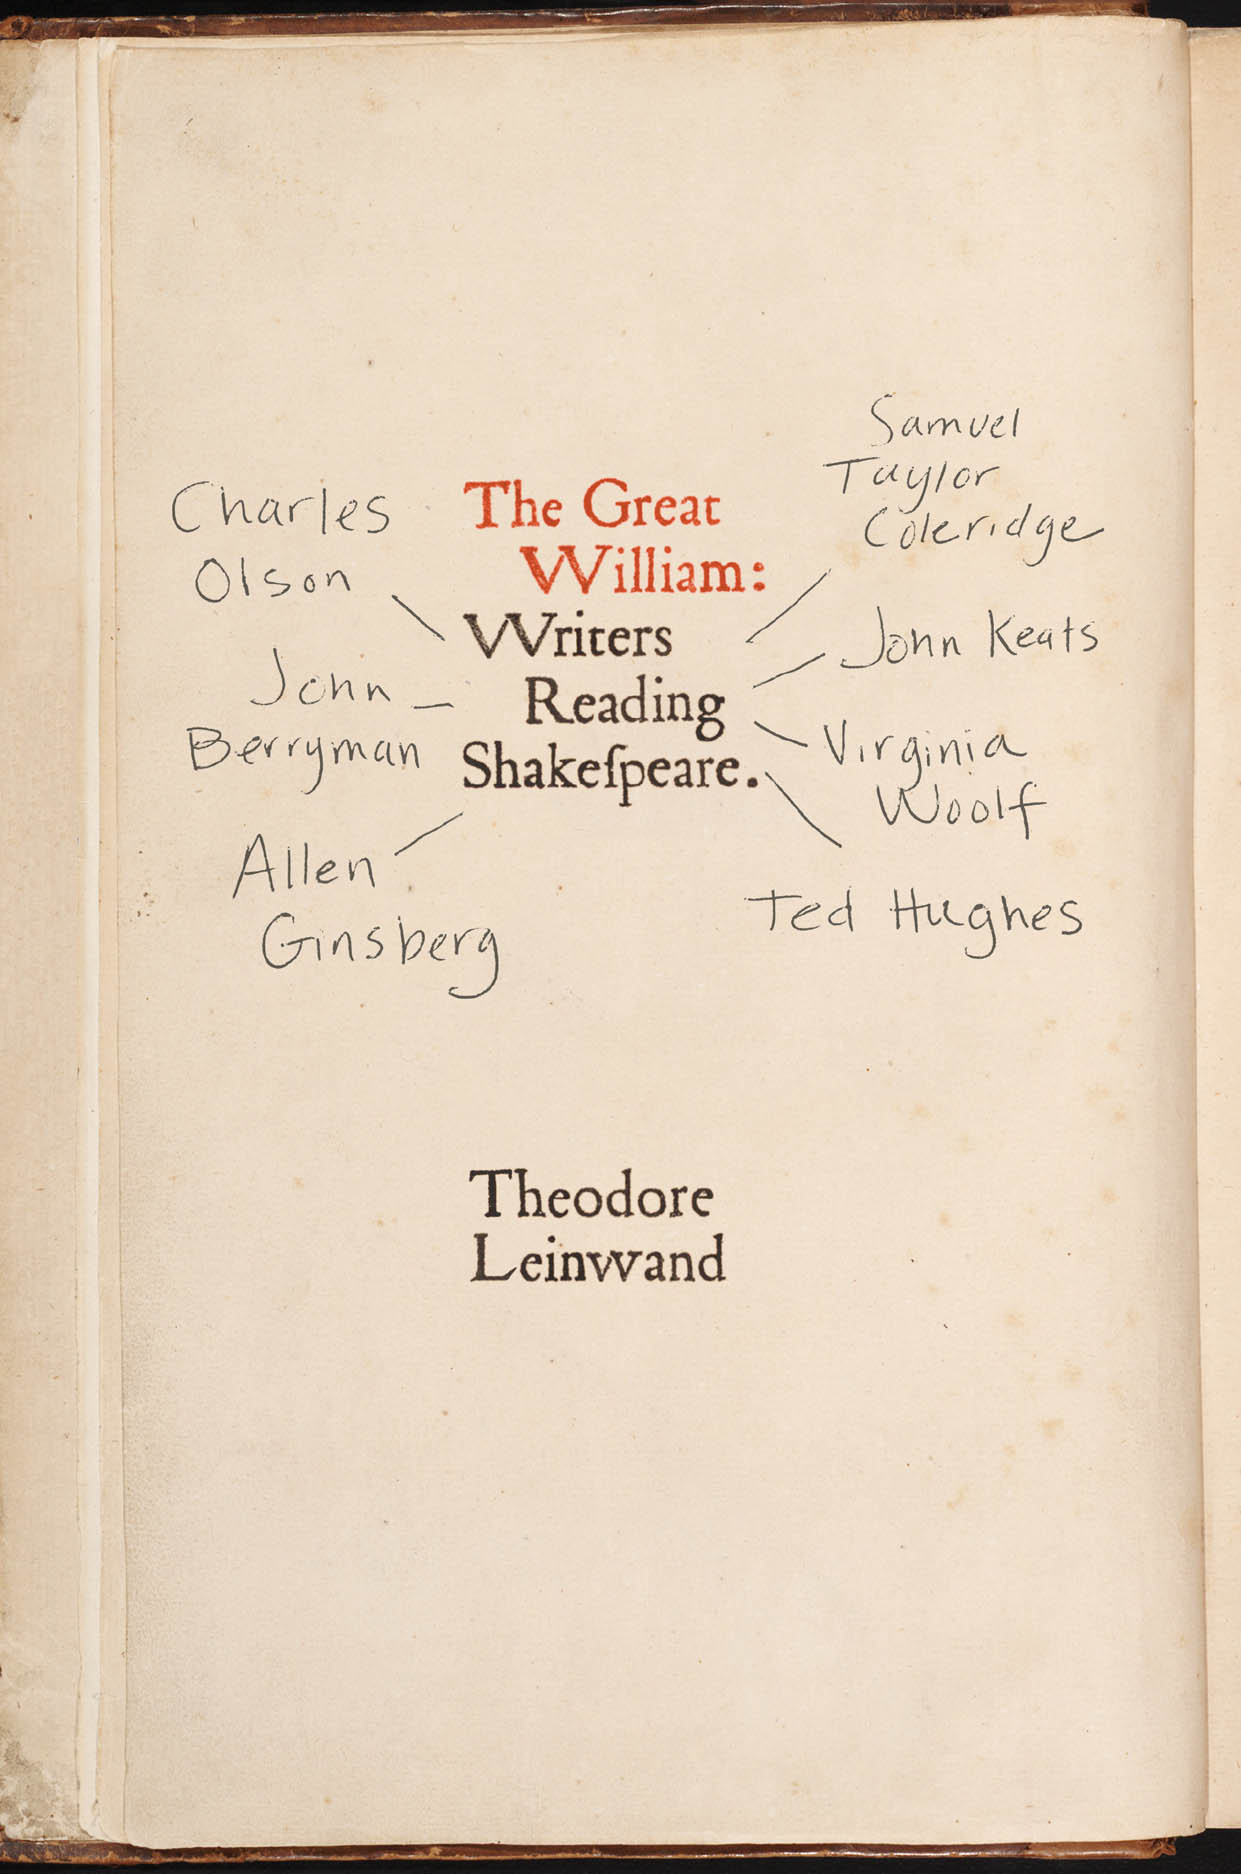 The Great William: Writers Reading Shakespeare